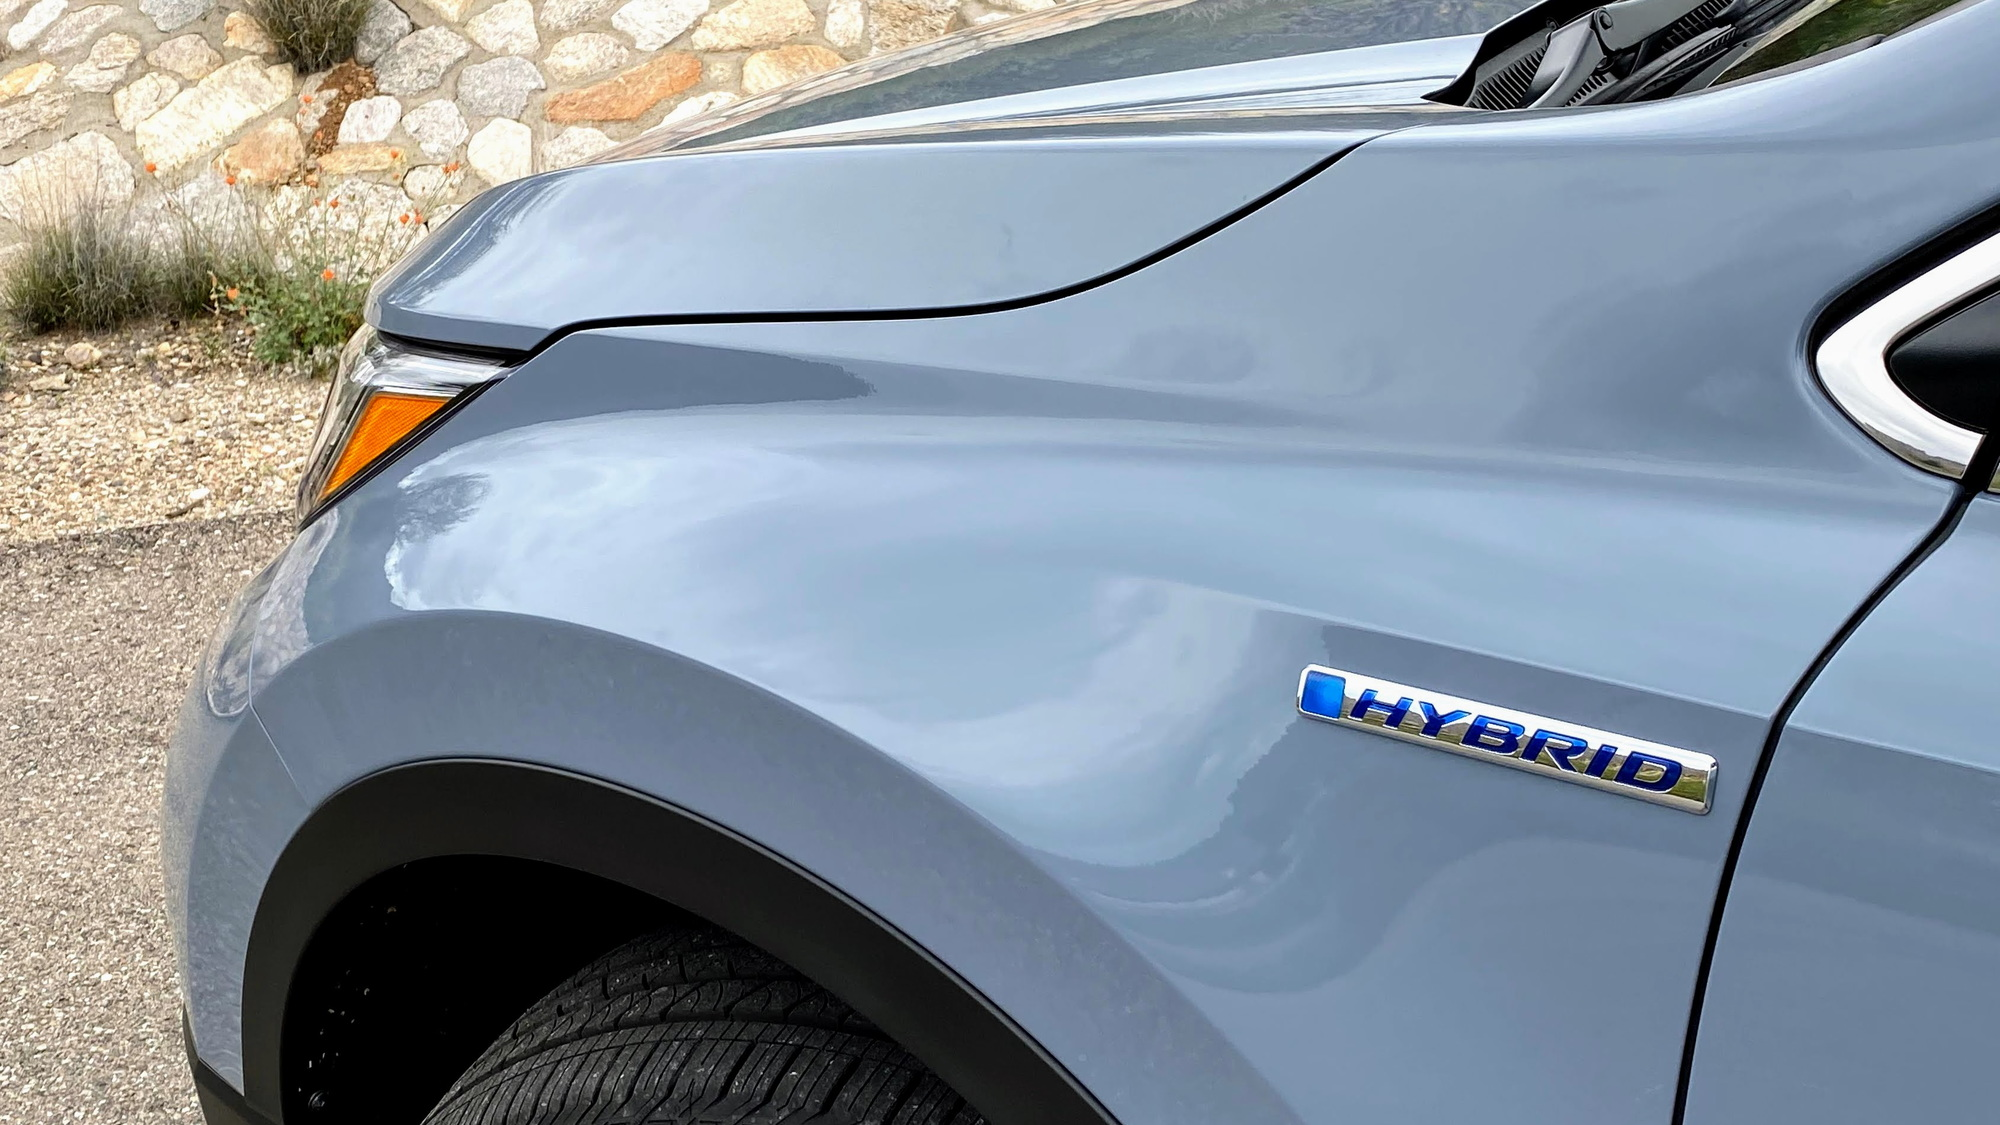 2020 本田 CR-V Hybrid  -  First Drive, March 2020